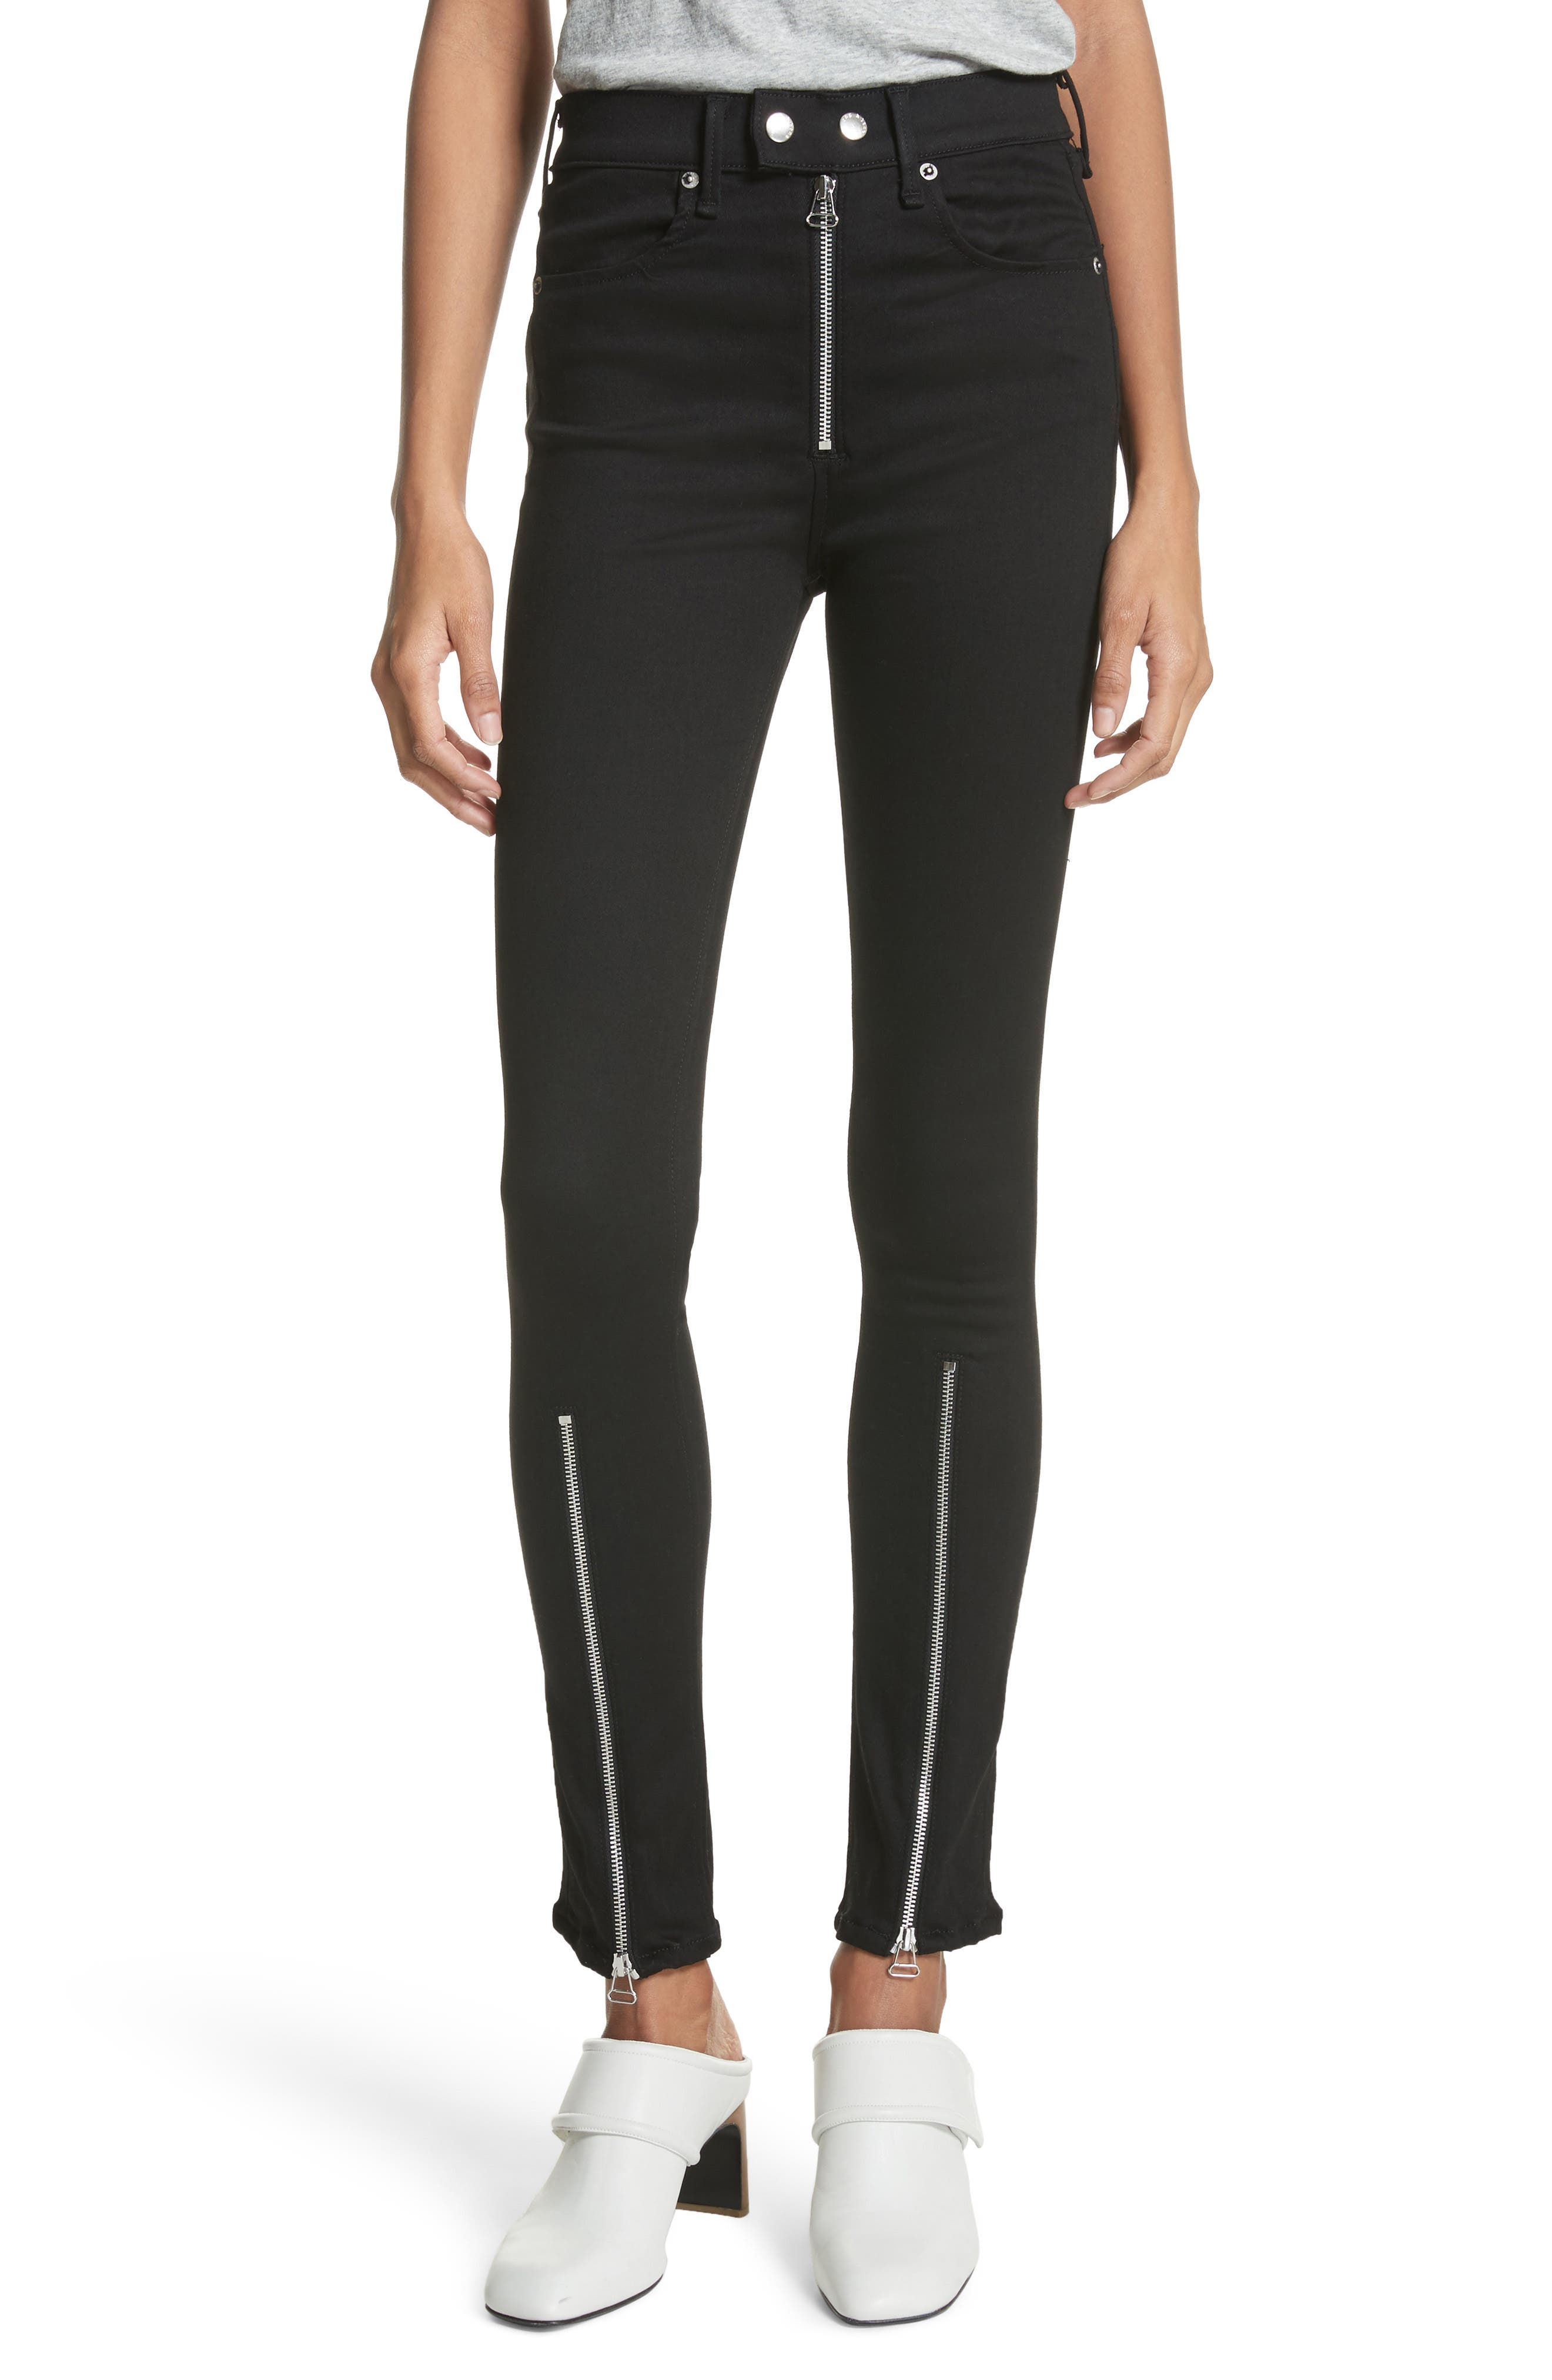 Isabel High Waist Skinny Jeans,                             Main thumbnail 1, color,                             Black